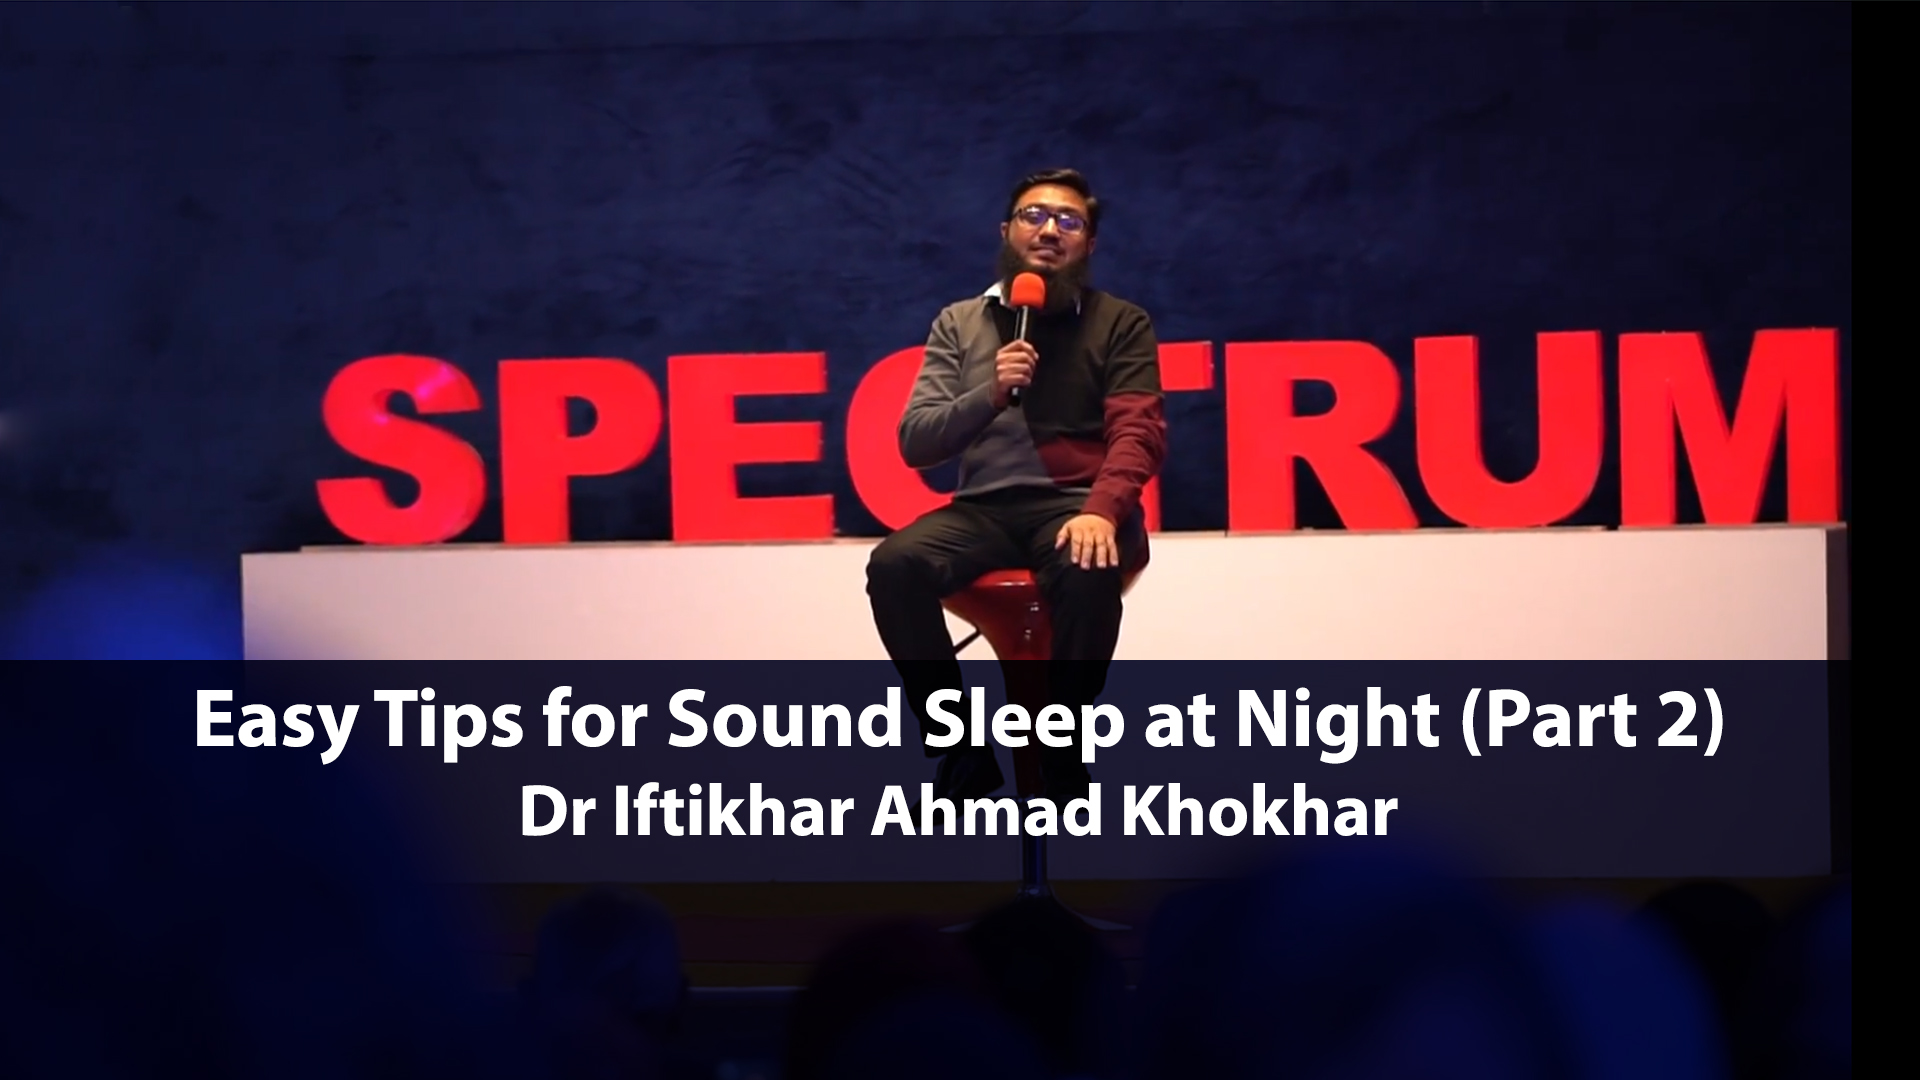 Easy Tips for Sound Sleep at Night (Part 2)